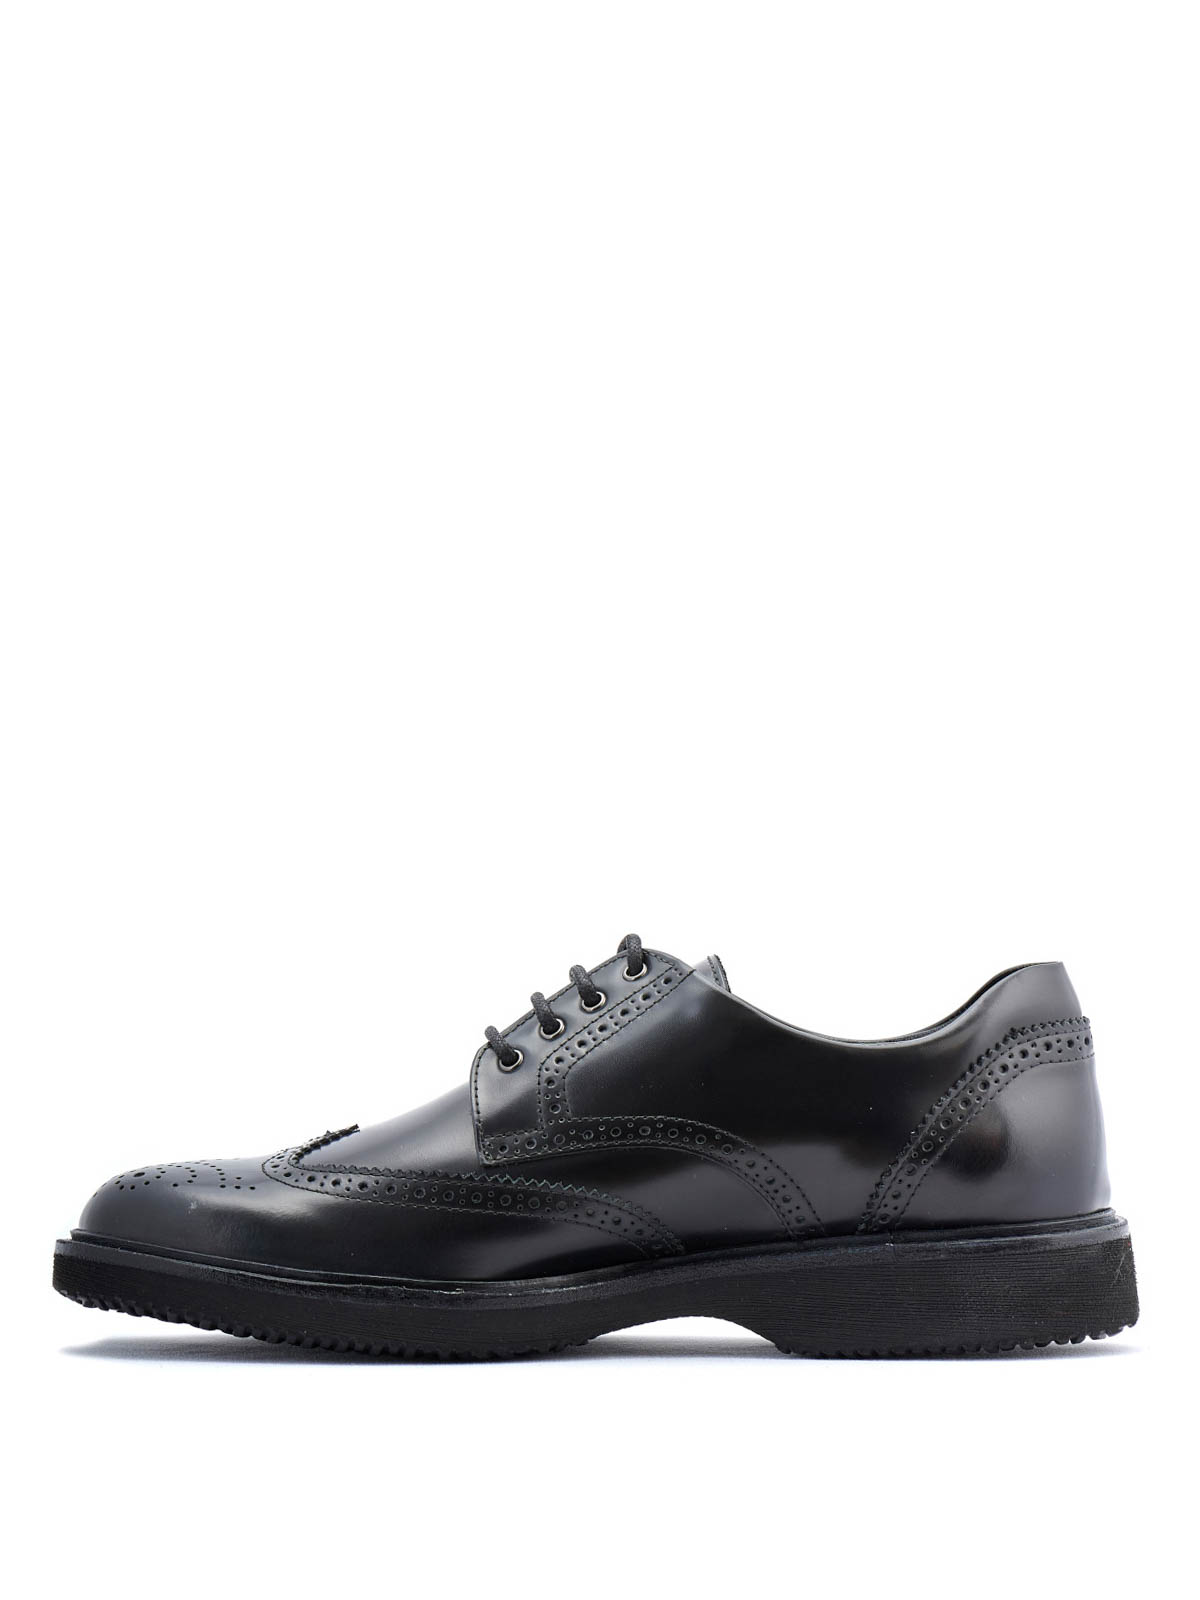 Derby Brogue shoes Hogan High Quality Online Buy Cheap Very Cheap Visit Online Outlet 100% Authentic Discount w06l2s1I